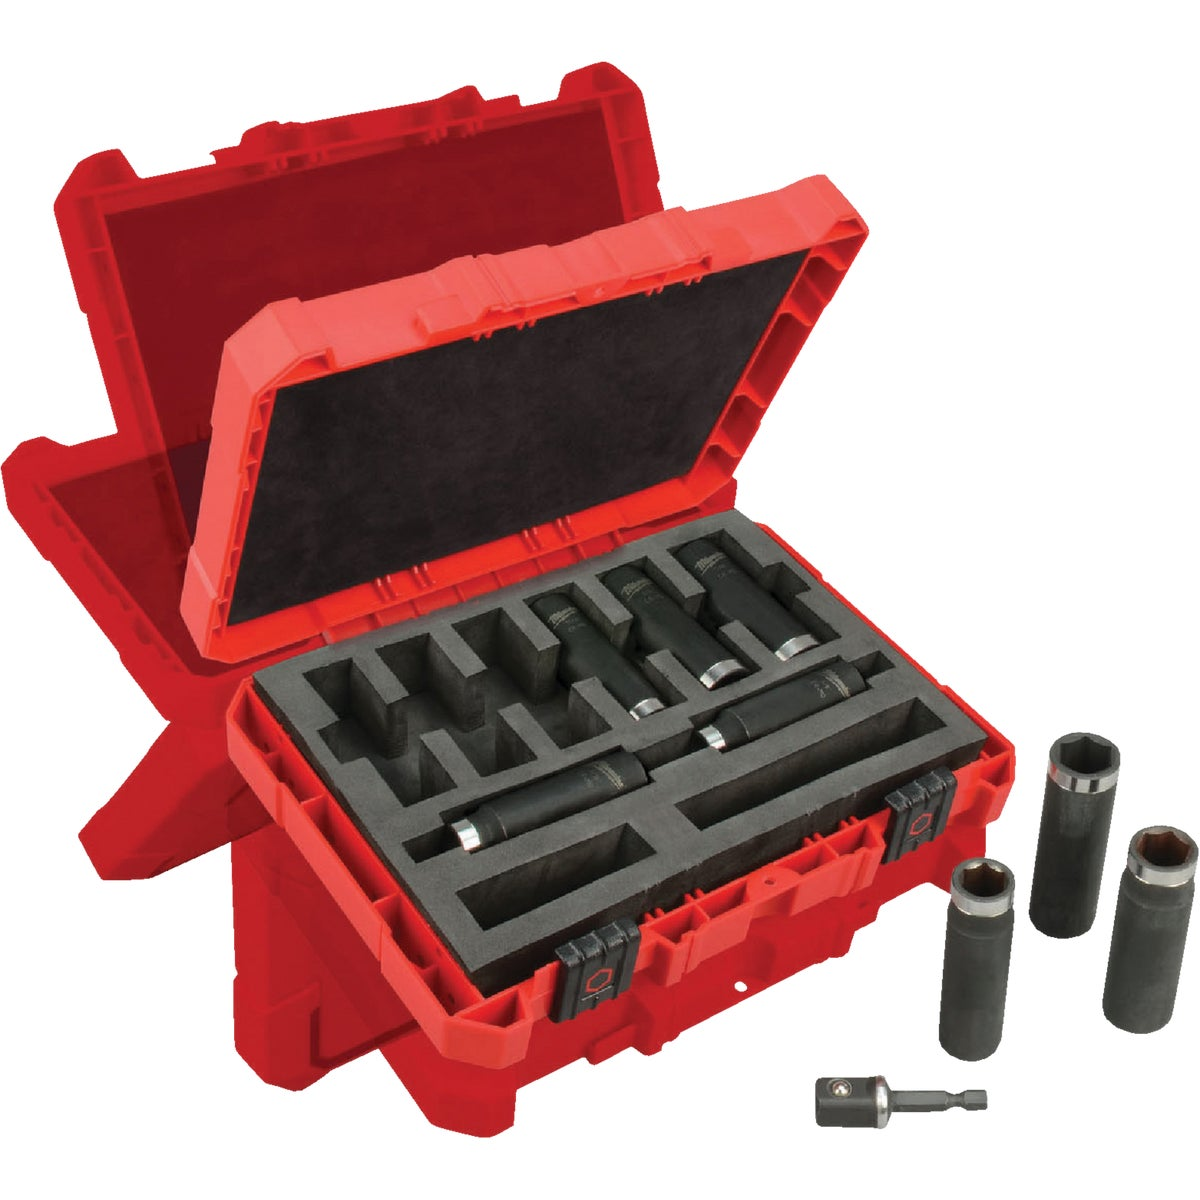 "9PC 1/2"" IMP SOCKET SET - 49-66-4484 by Milwaukee Accessory"